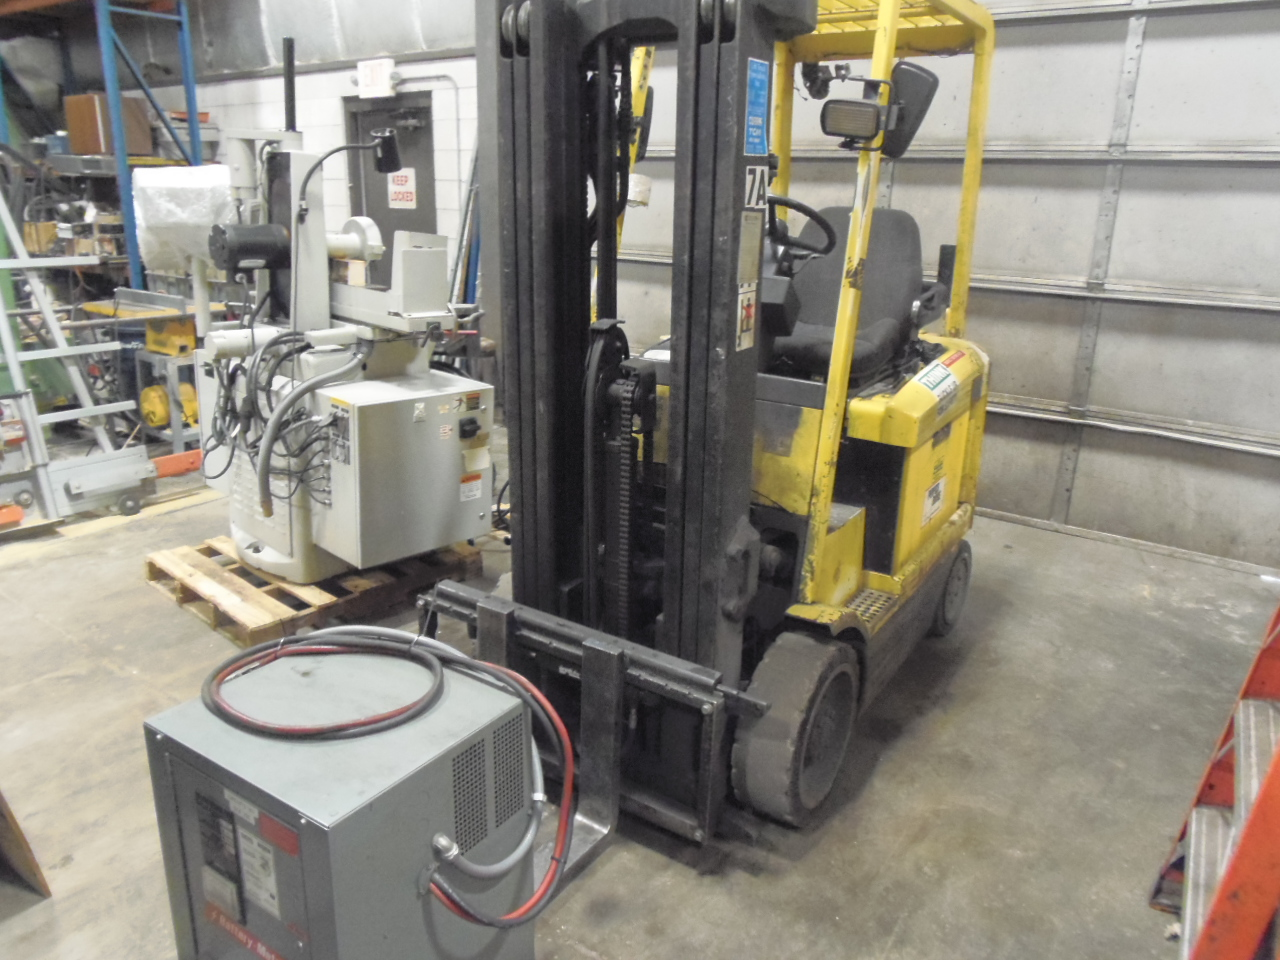 "5,000 LB. HYSTER ELECTRIC FORK LIFT, MODEL E50XH-33, 189"" LIFT HEIGHT, TRIPLE MAST, SOLID TIRES, NO BATTERY, CHARGER, SIDE SHIFT, 1996"